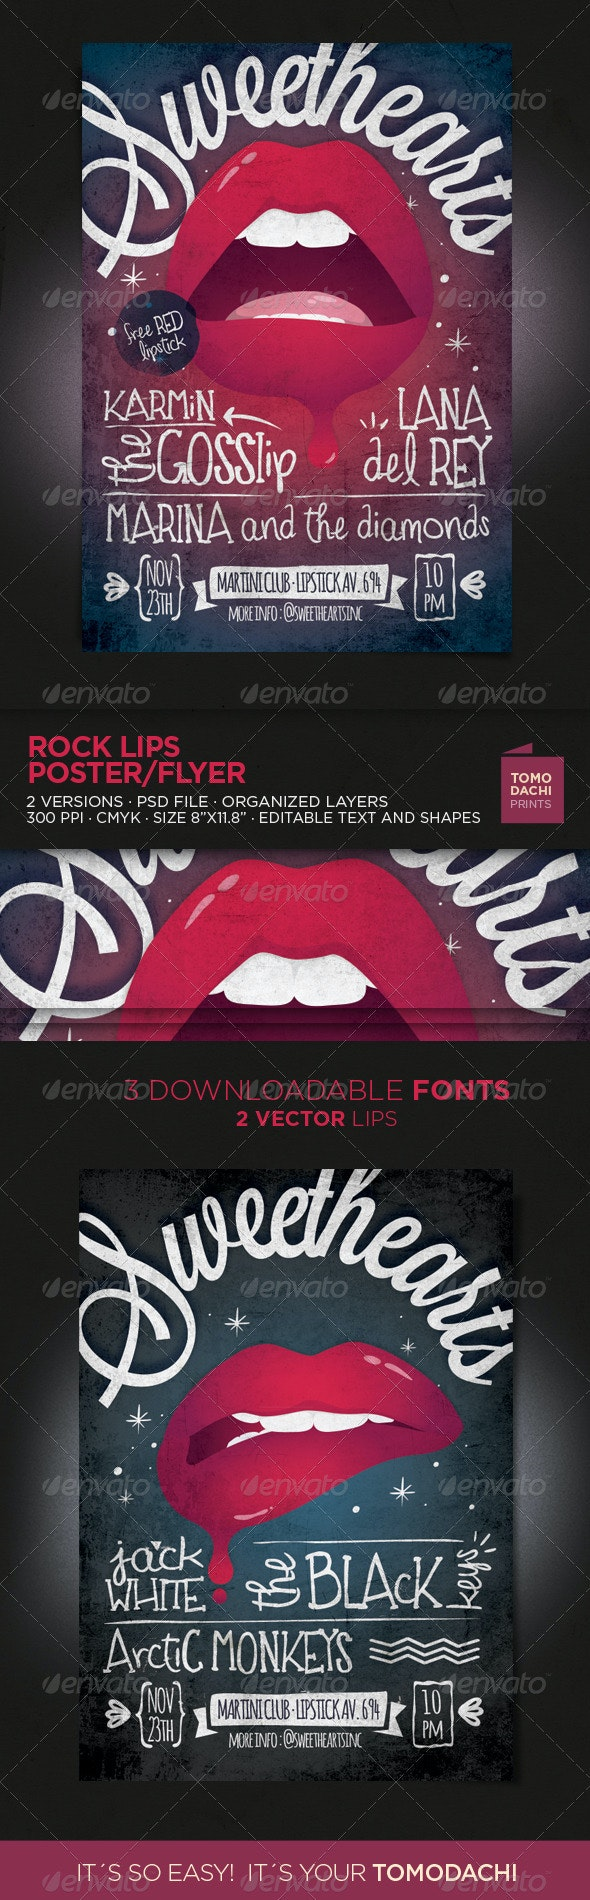 Rock Lips Flyer/Poster - Concerts Events